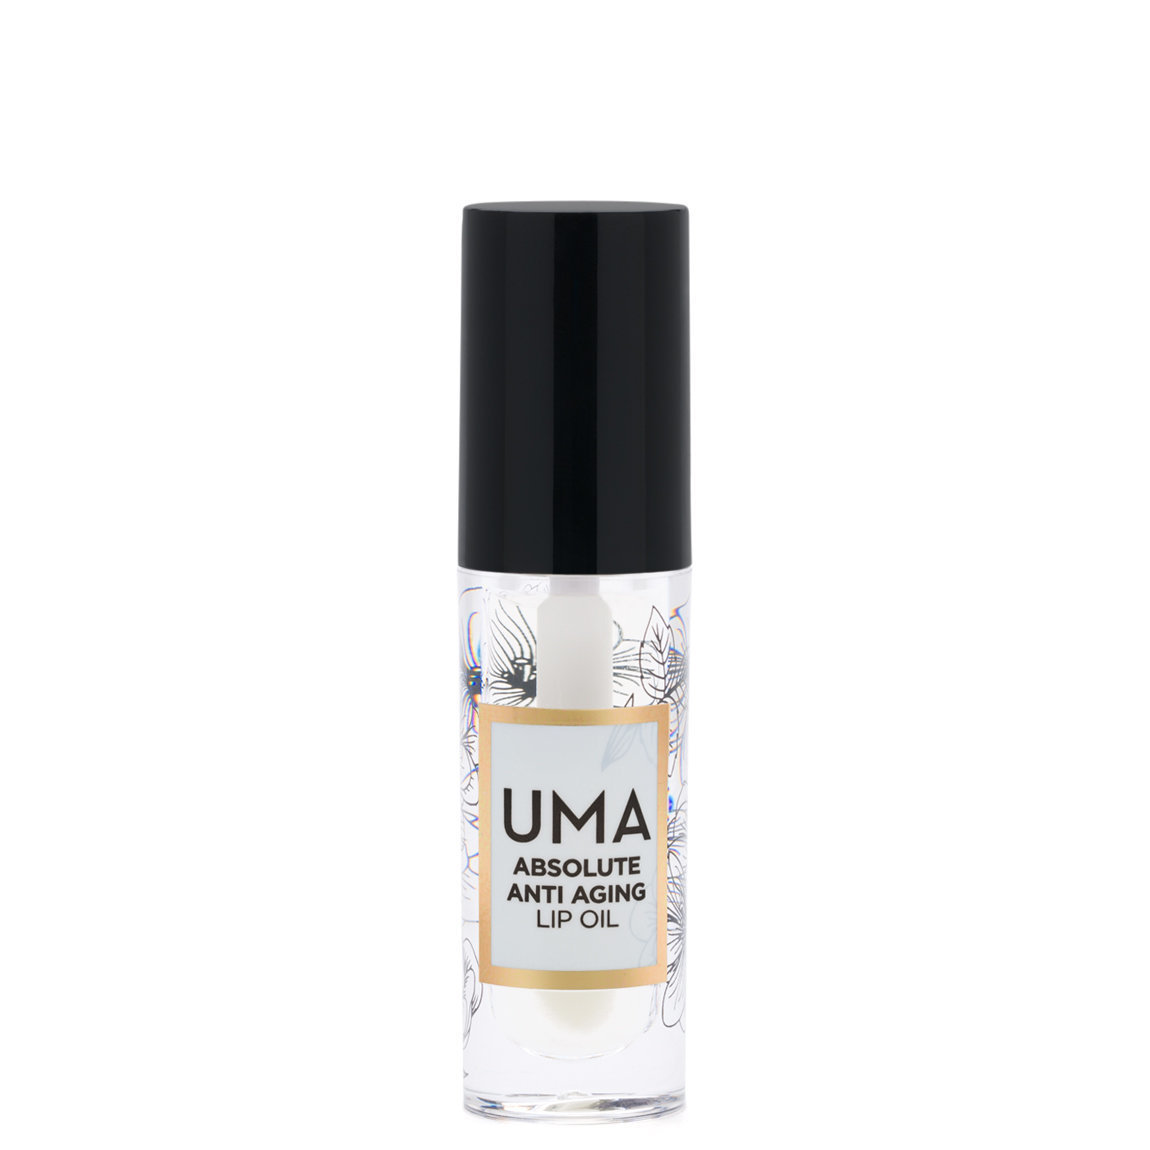 Uma Absolute Anti Aging Lip Oil alternative view 1 - product swatch.